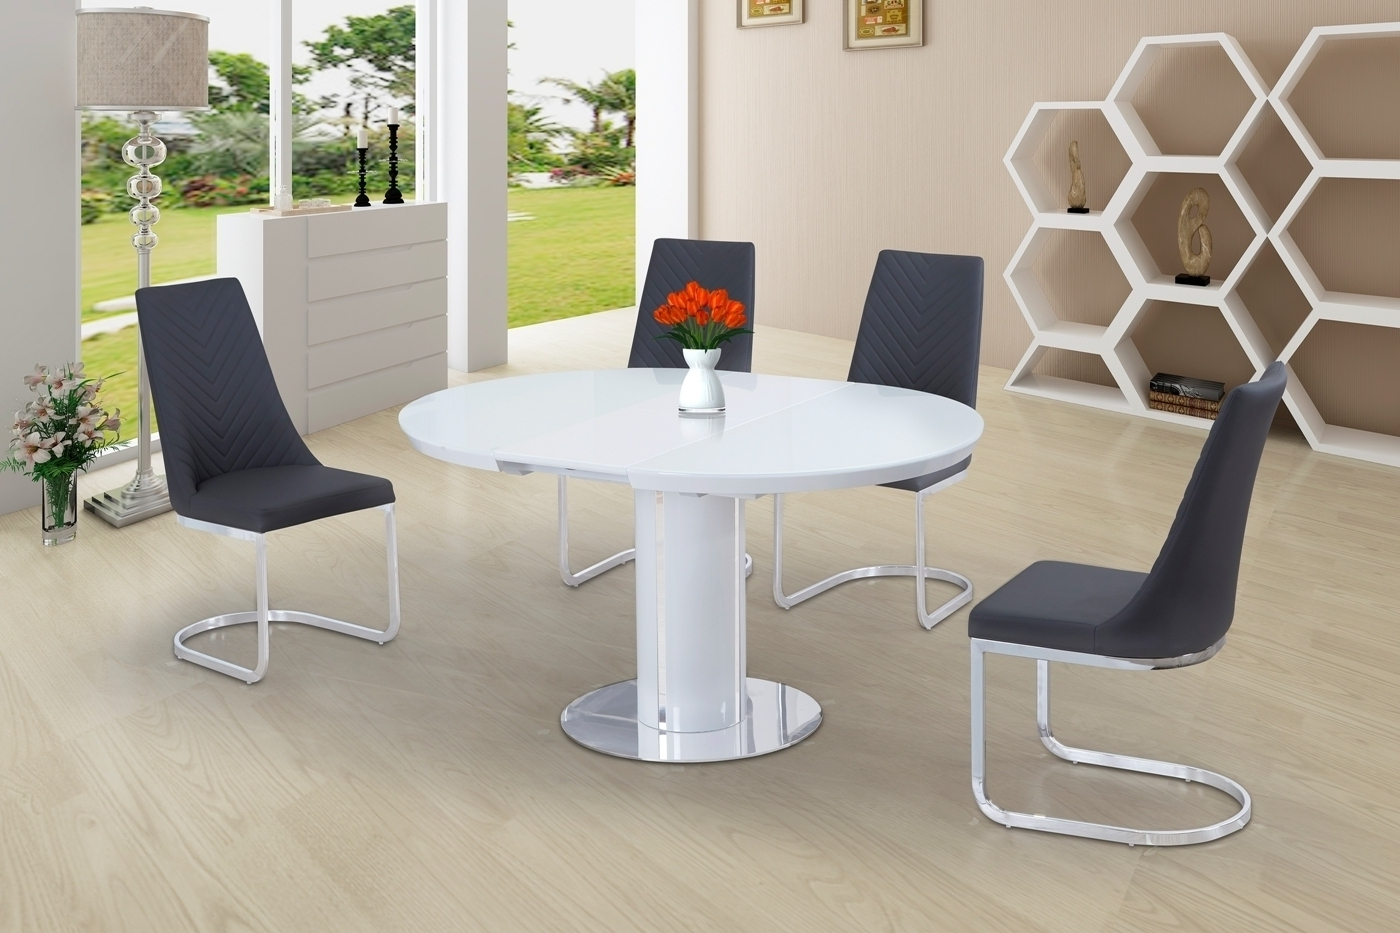 Best And Newest White Gloss Dining Room Furniture With Round White Glass High Gloss Dining Table And 6 Grey Chairs Set (View 9 of 25)